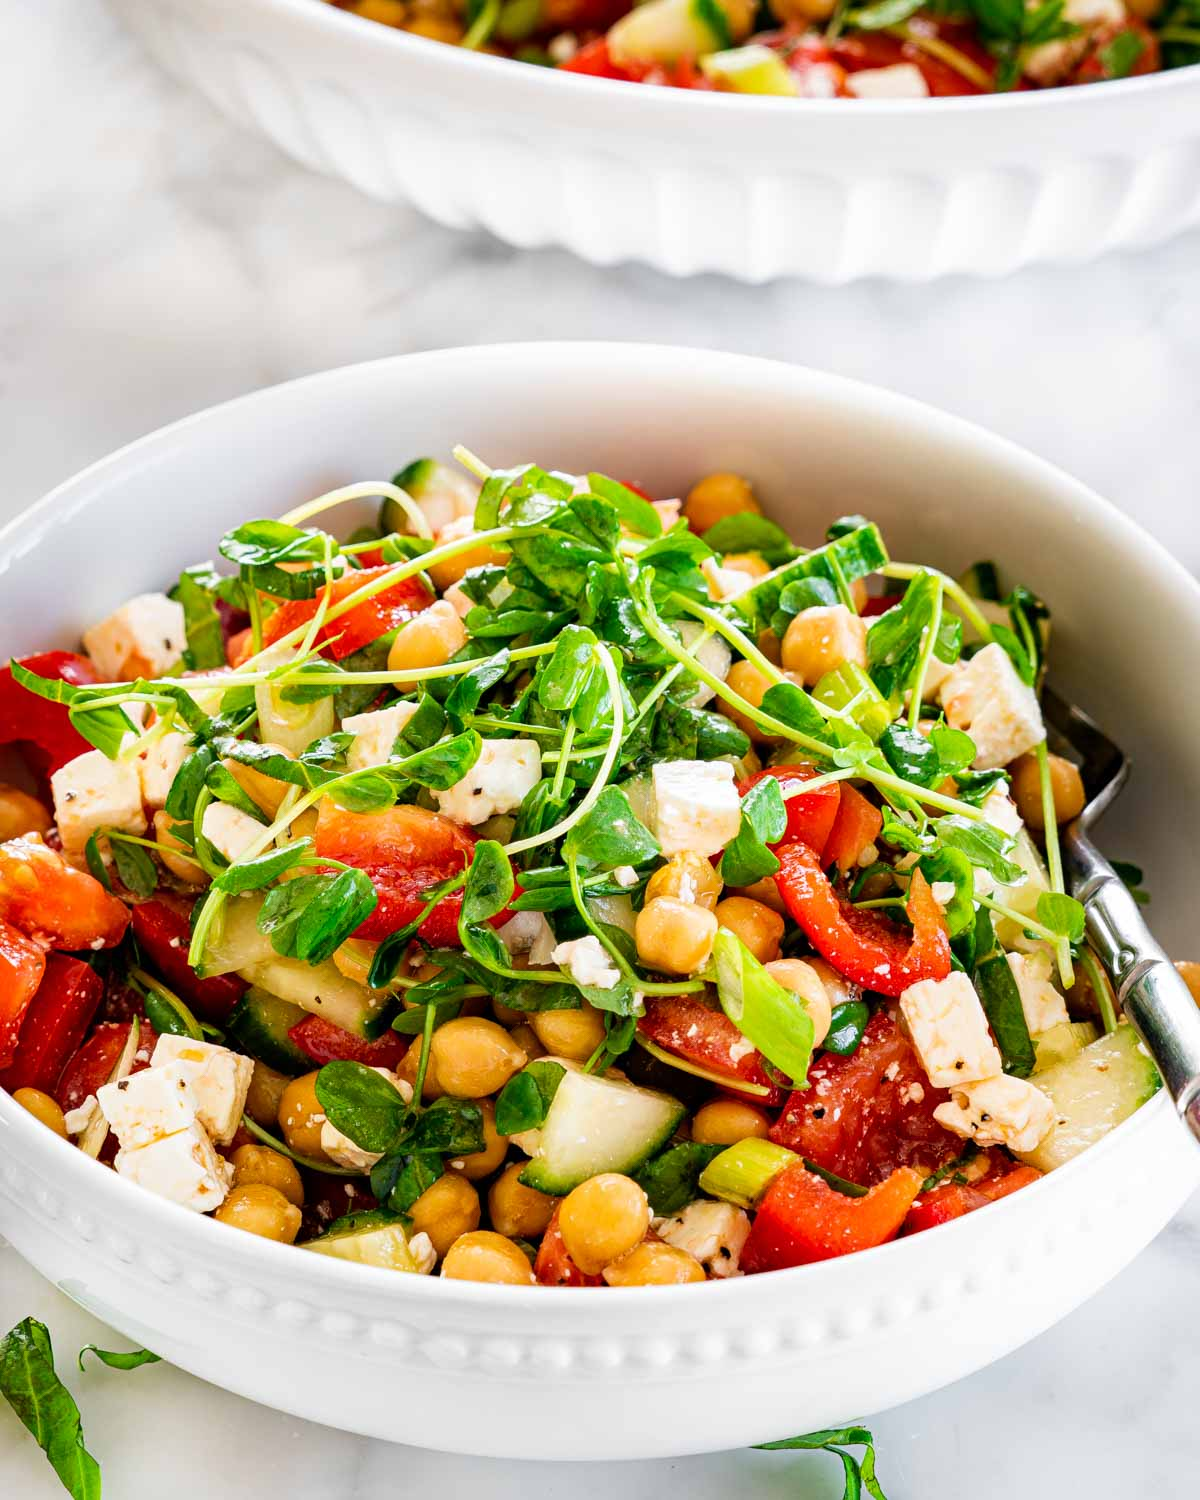 chickpea salad in a small white bowl